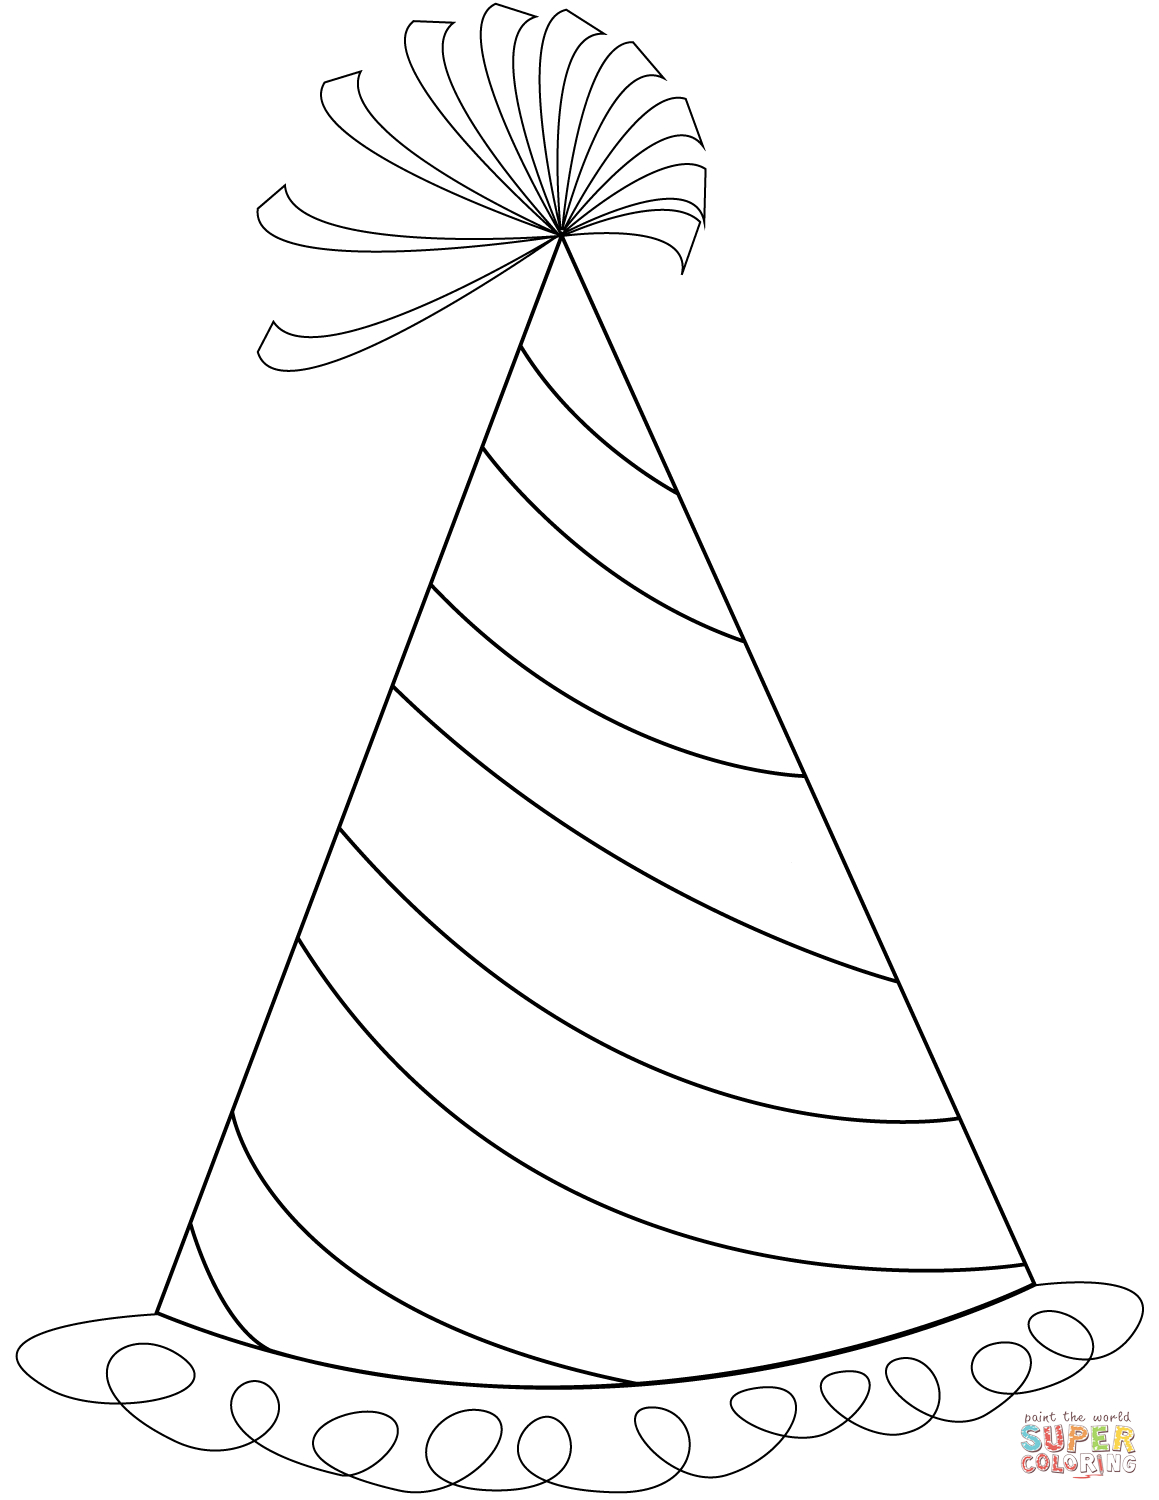 Happy Birthday Party Hat Coloring Page | Free Printable Coloring Pages - Free Printable Birthday Party Hats